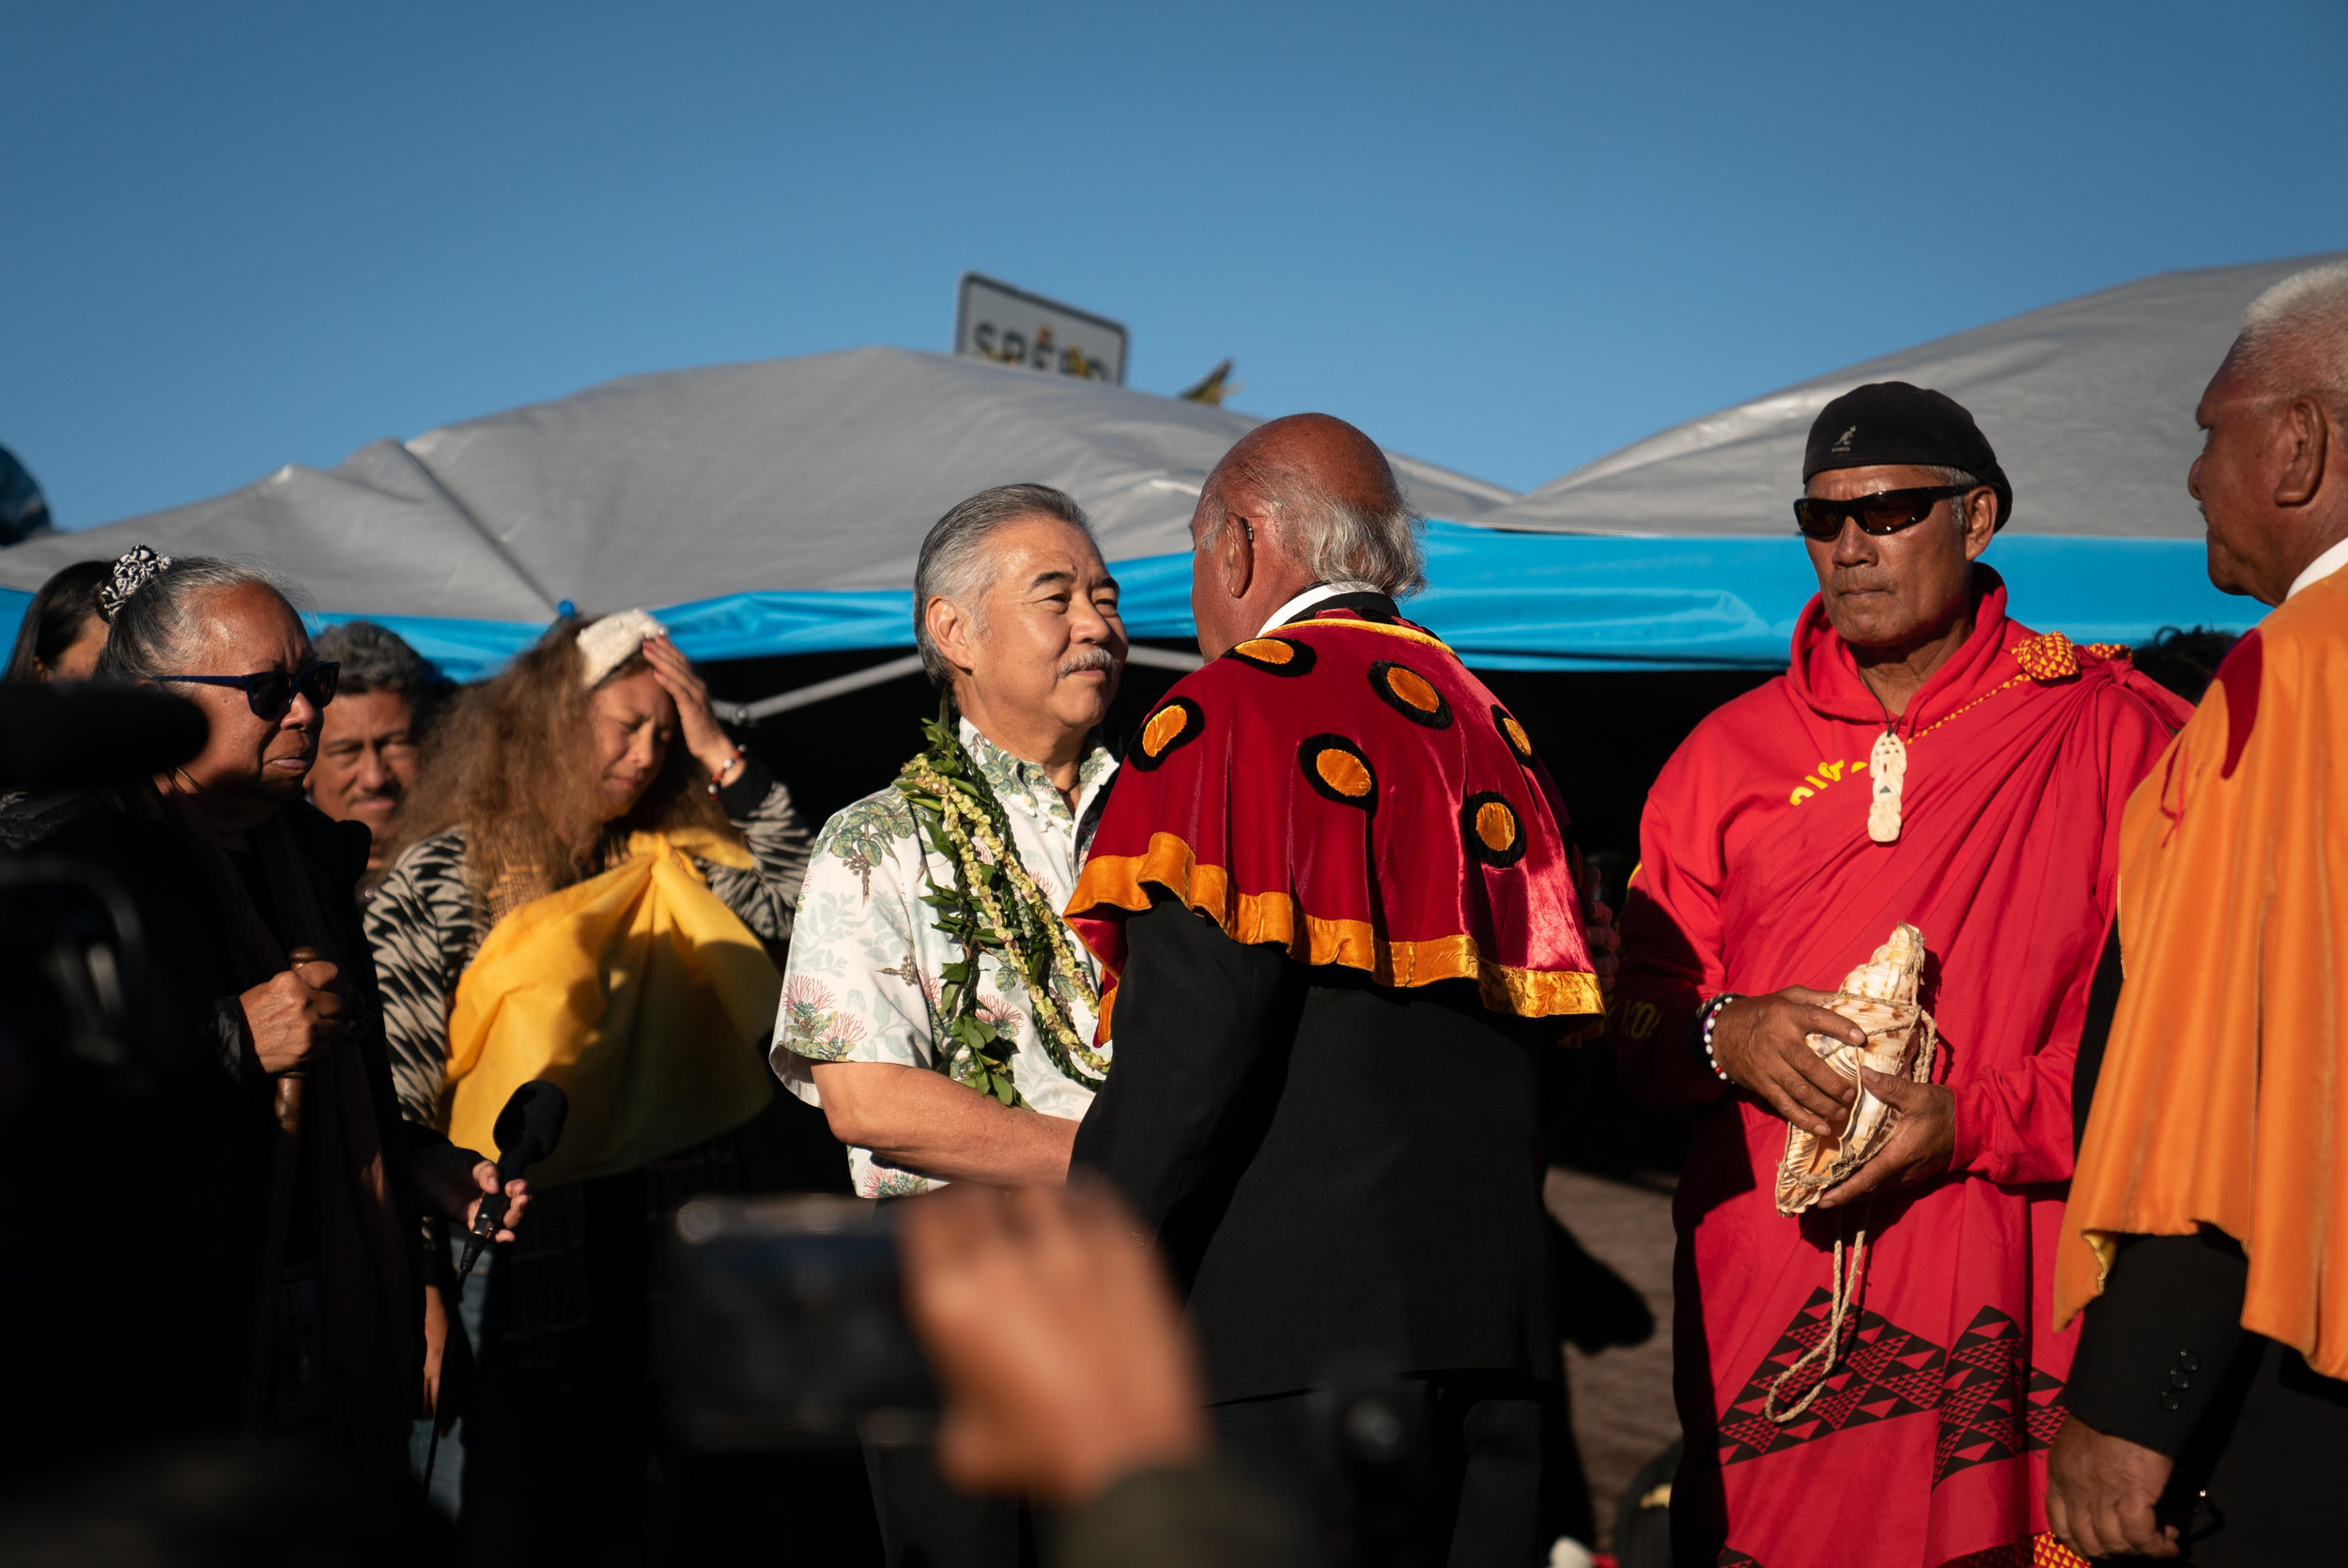 Governor David Ige arrives on the mountain after declaring a state of emergency and is greeted by the Royal Order of Kamehameha.